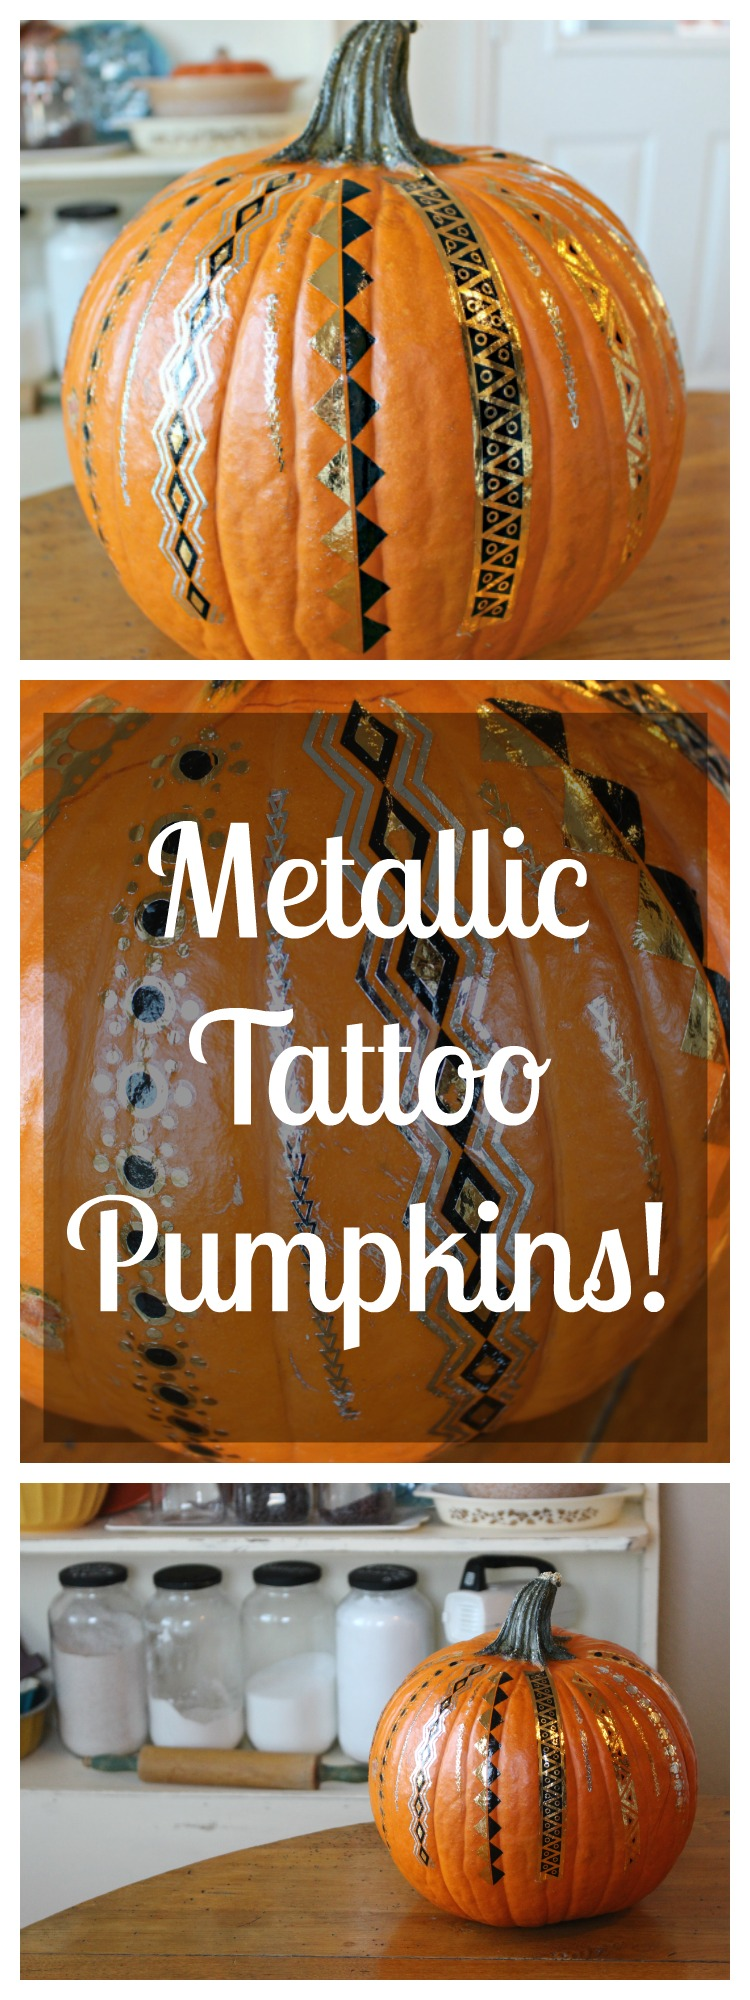 DIY Metallic Tattoo Pumpkins!